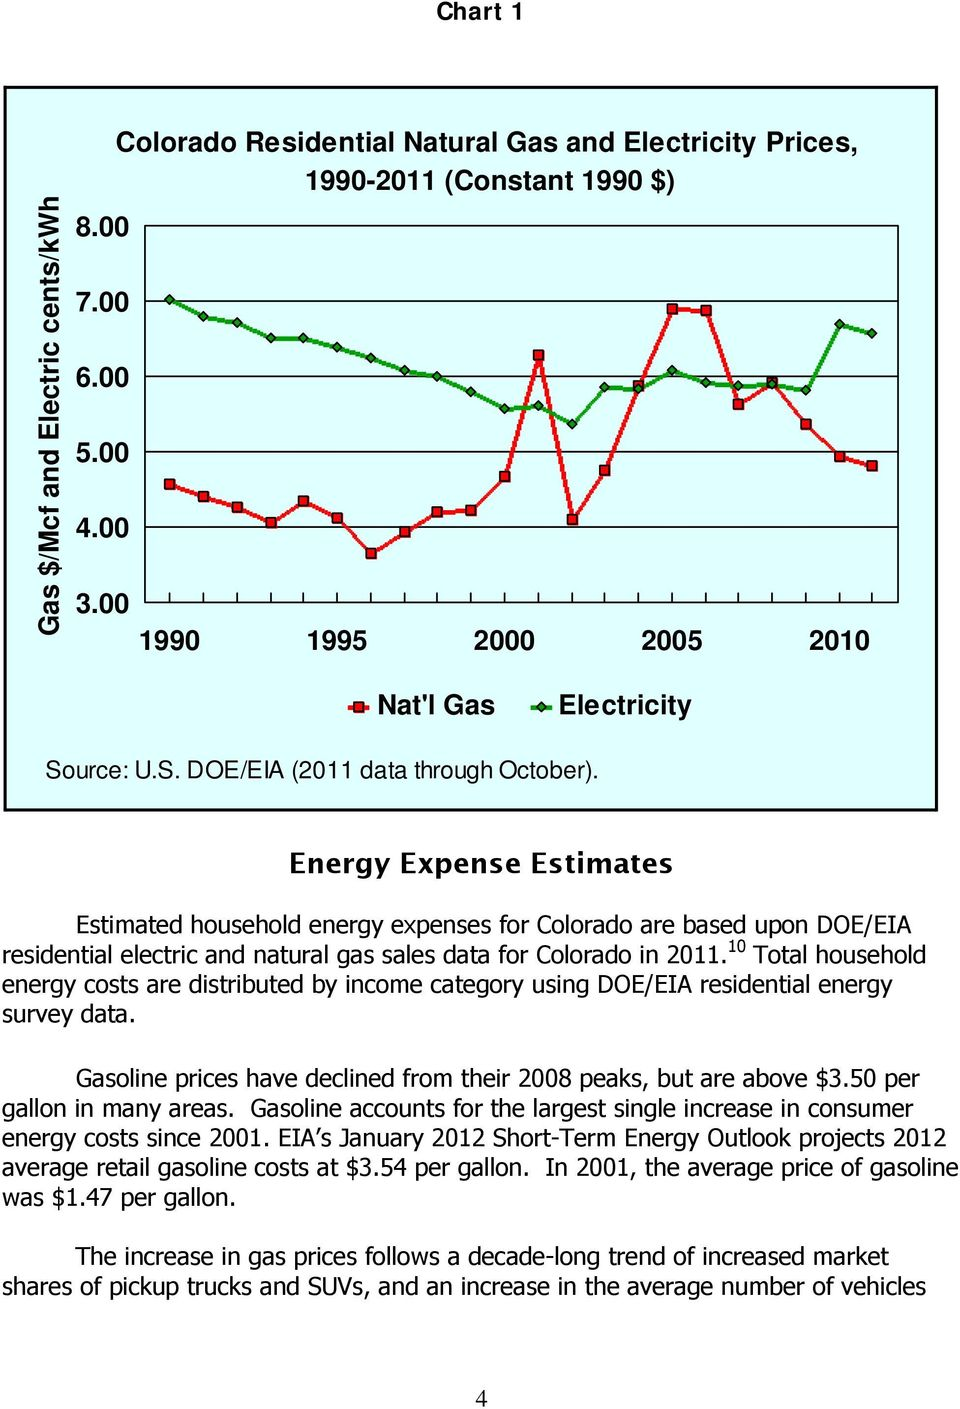 Energy Expense Estimates Estimated household energy expenses for Colorado are based upon DOE/EIA residential electric and natural gas sales data for Colorado in 2011.